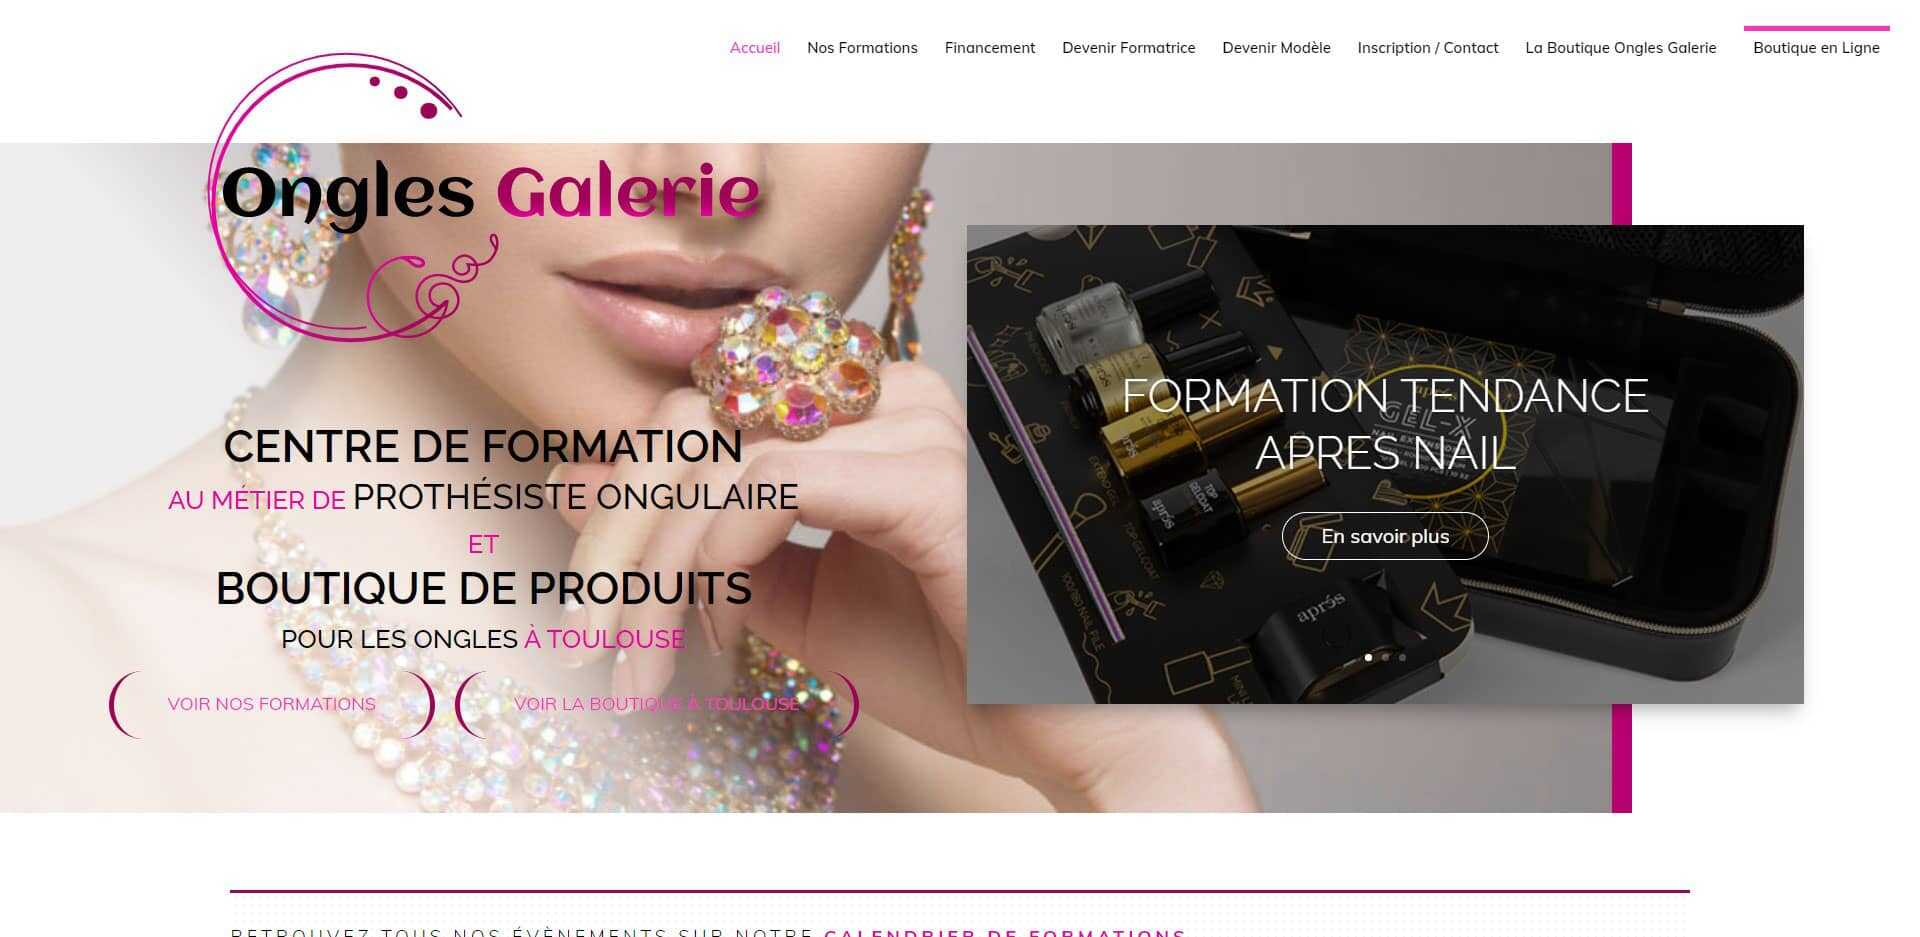 page d'acceuil du site internet ongles galerie